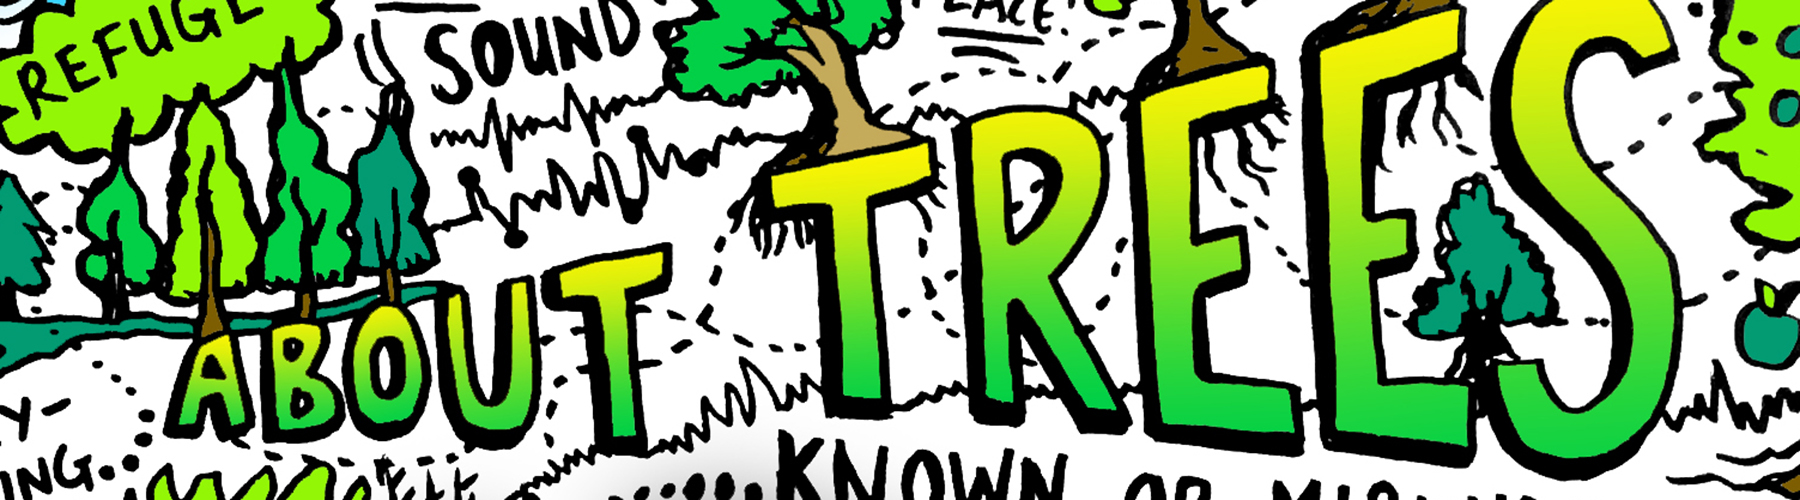 About Trees live sketch note